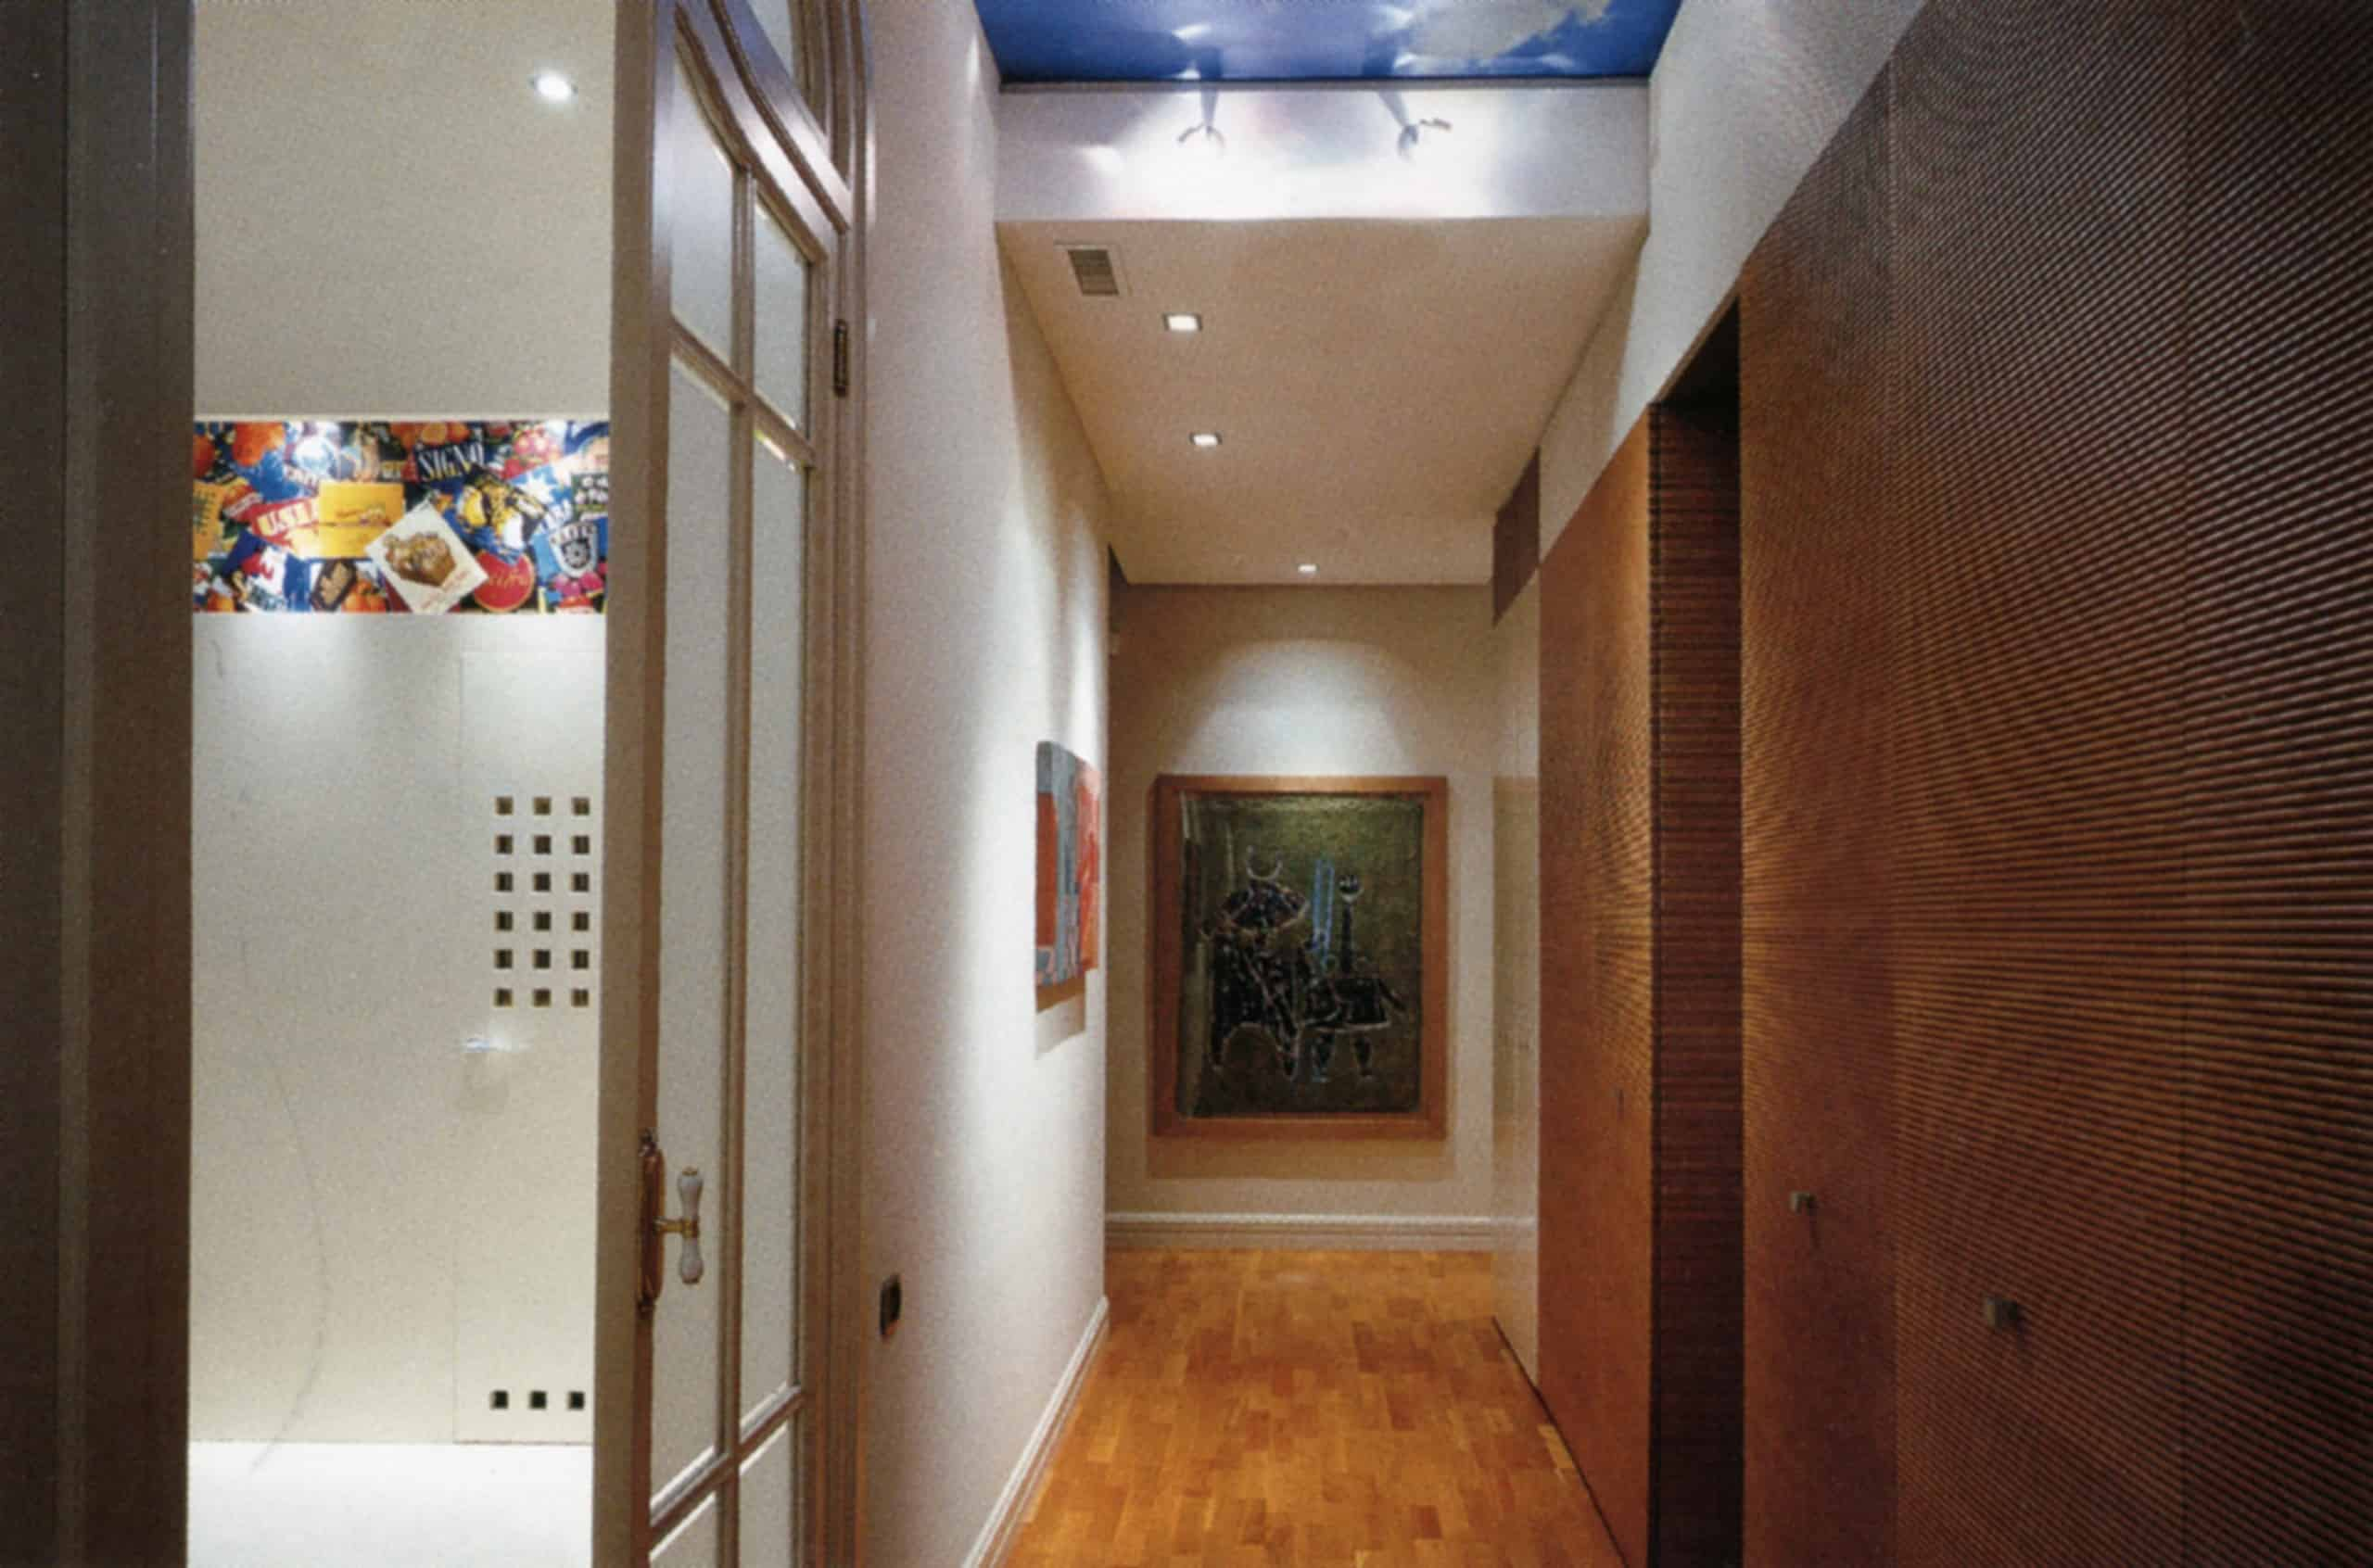 Contemporary Interior Design Style Expert Service & Furniture Sale by INDOOR Architecture London UK